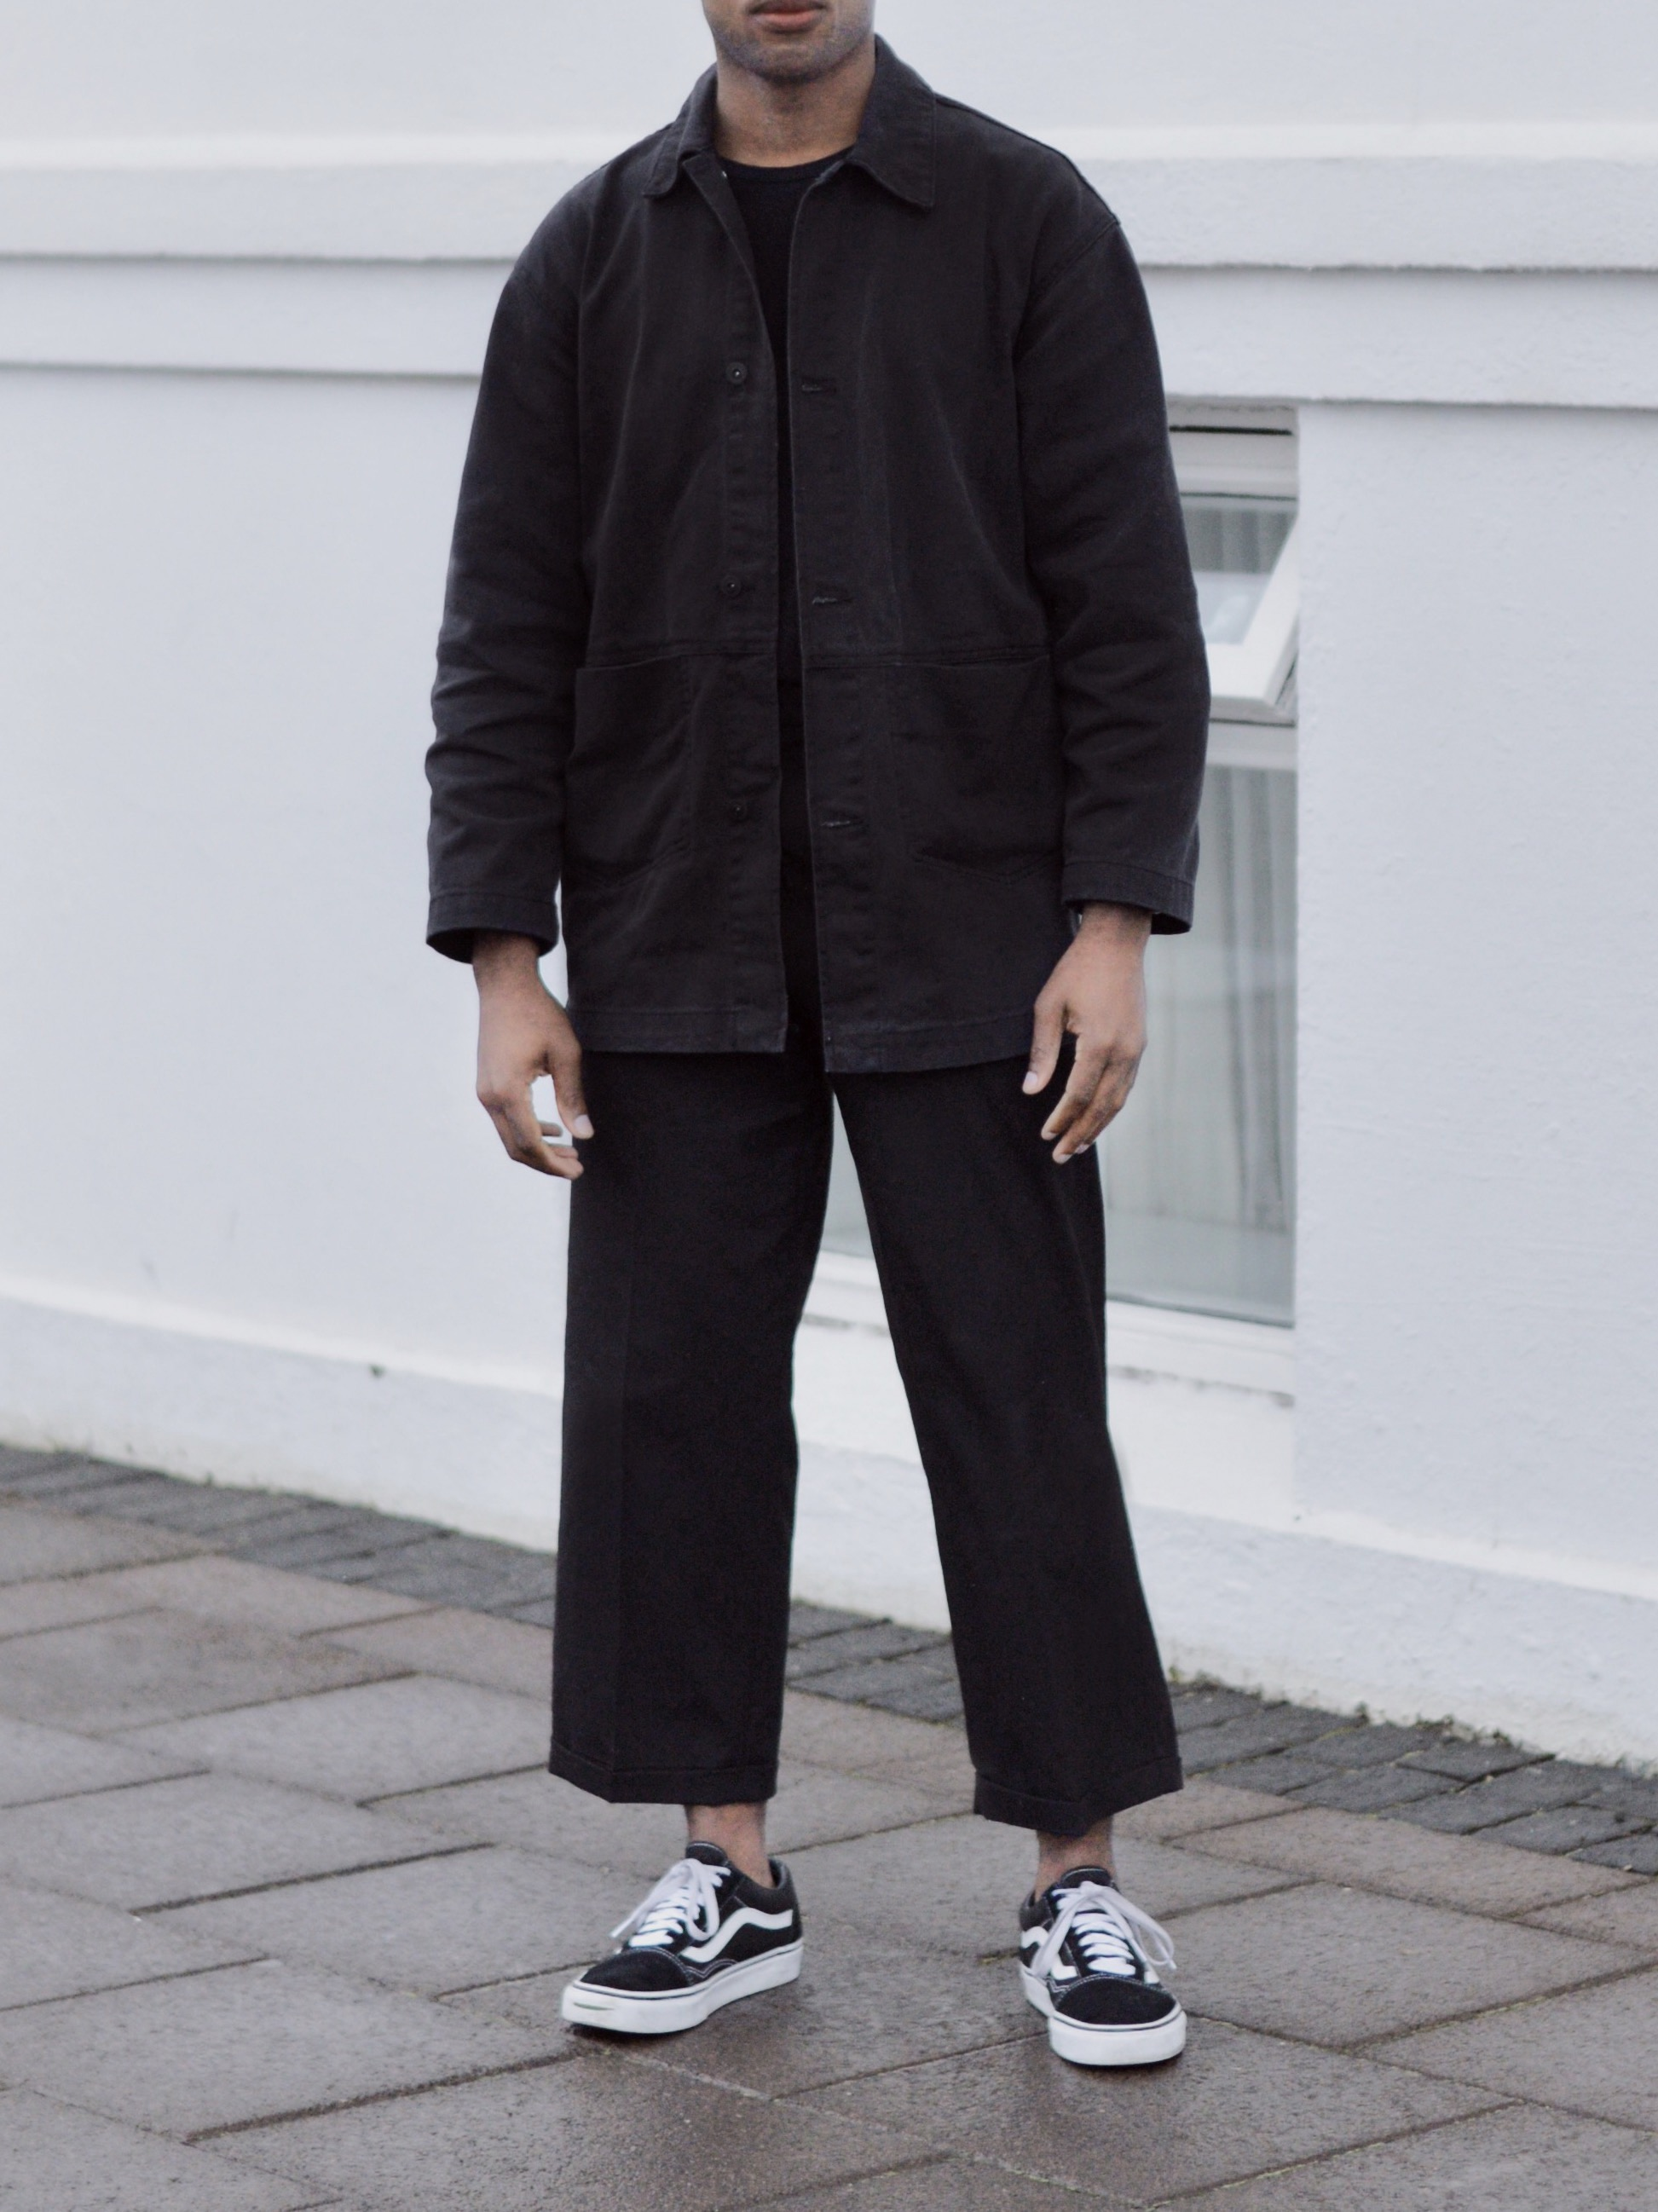 The-Look-Principle-Oversized-Worker-Style-In-Reykjavik-3.jpg